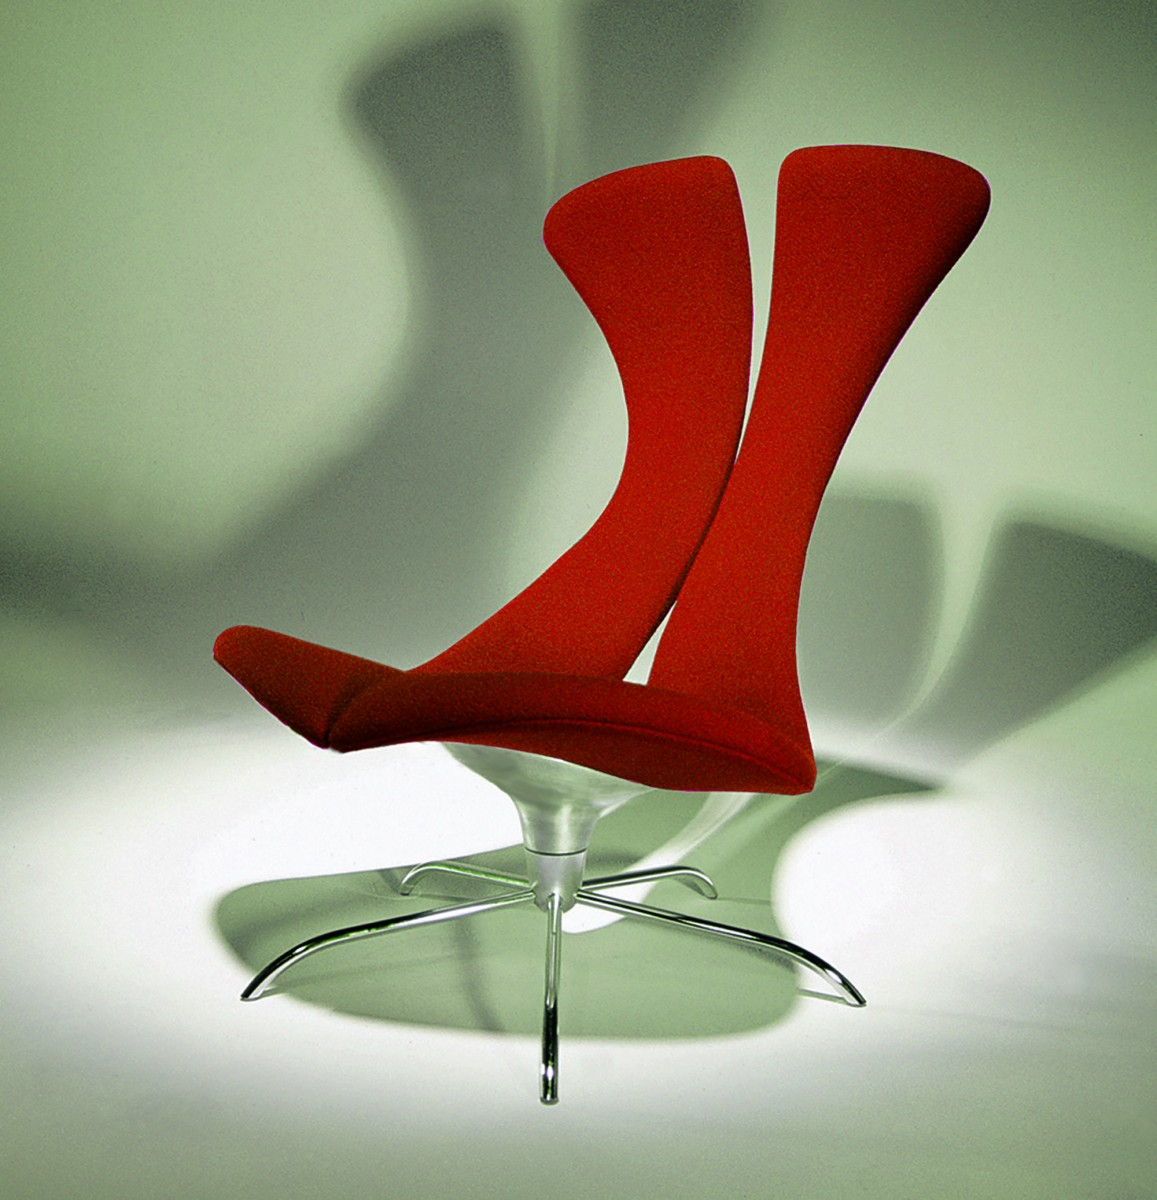 SW1 Swivel Chair by Charles Wilson, manufactured by Woolmark International, originally designed in the 90s.